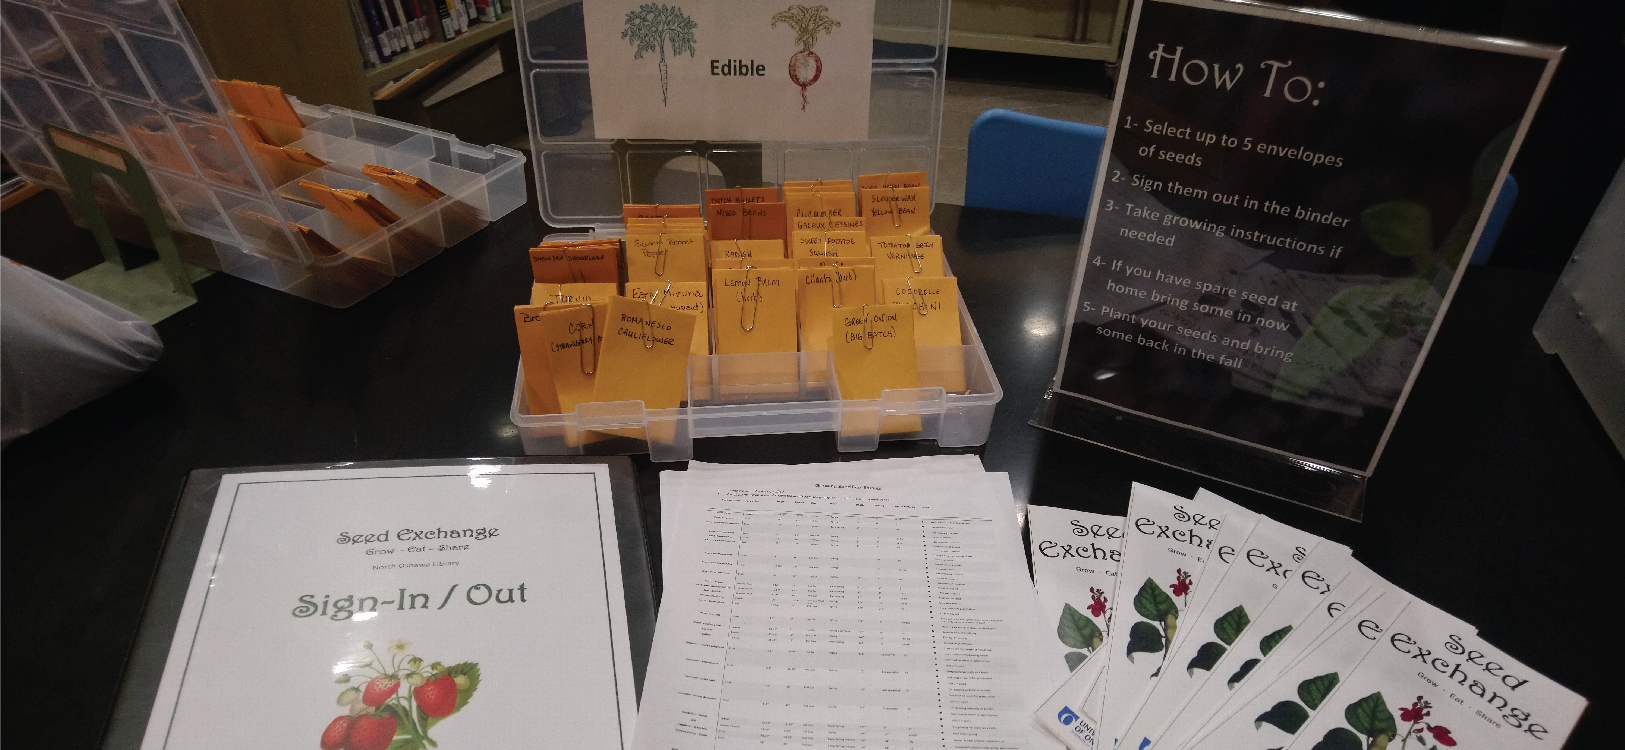 seed exchange display at the library